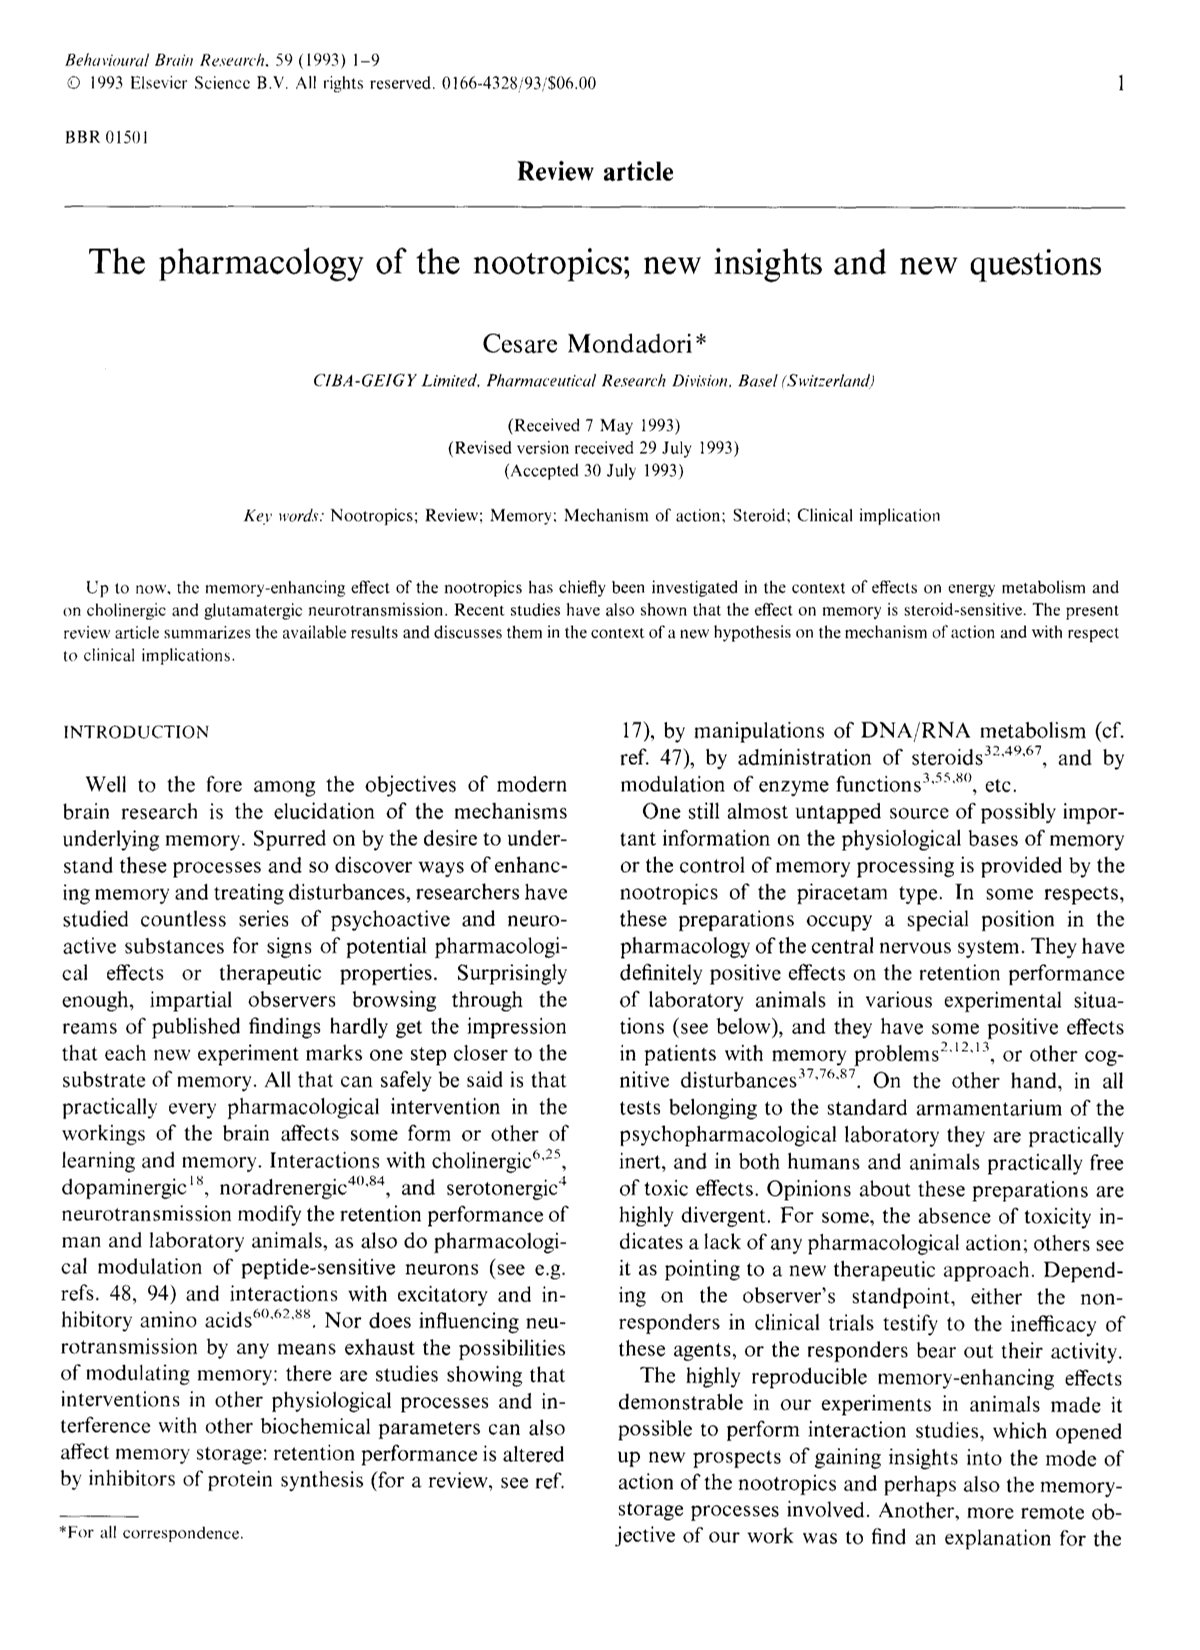 The pharmacology of the nootropics; new insights and new questions